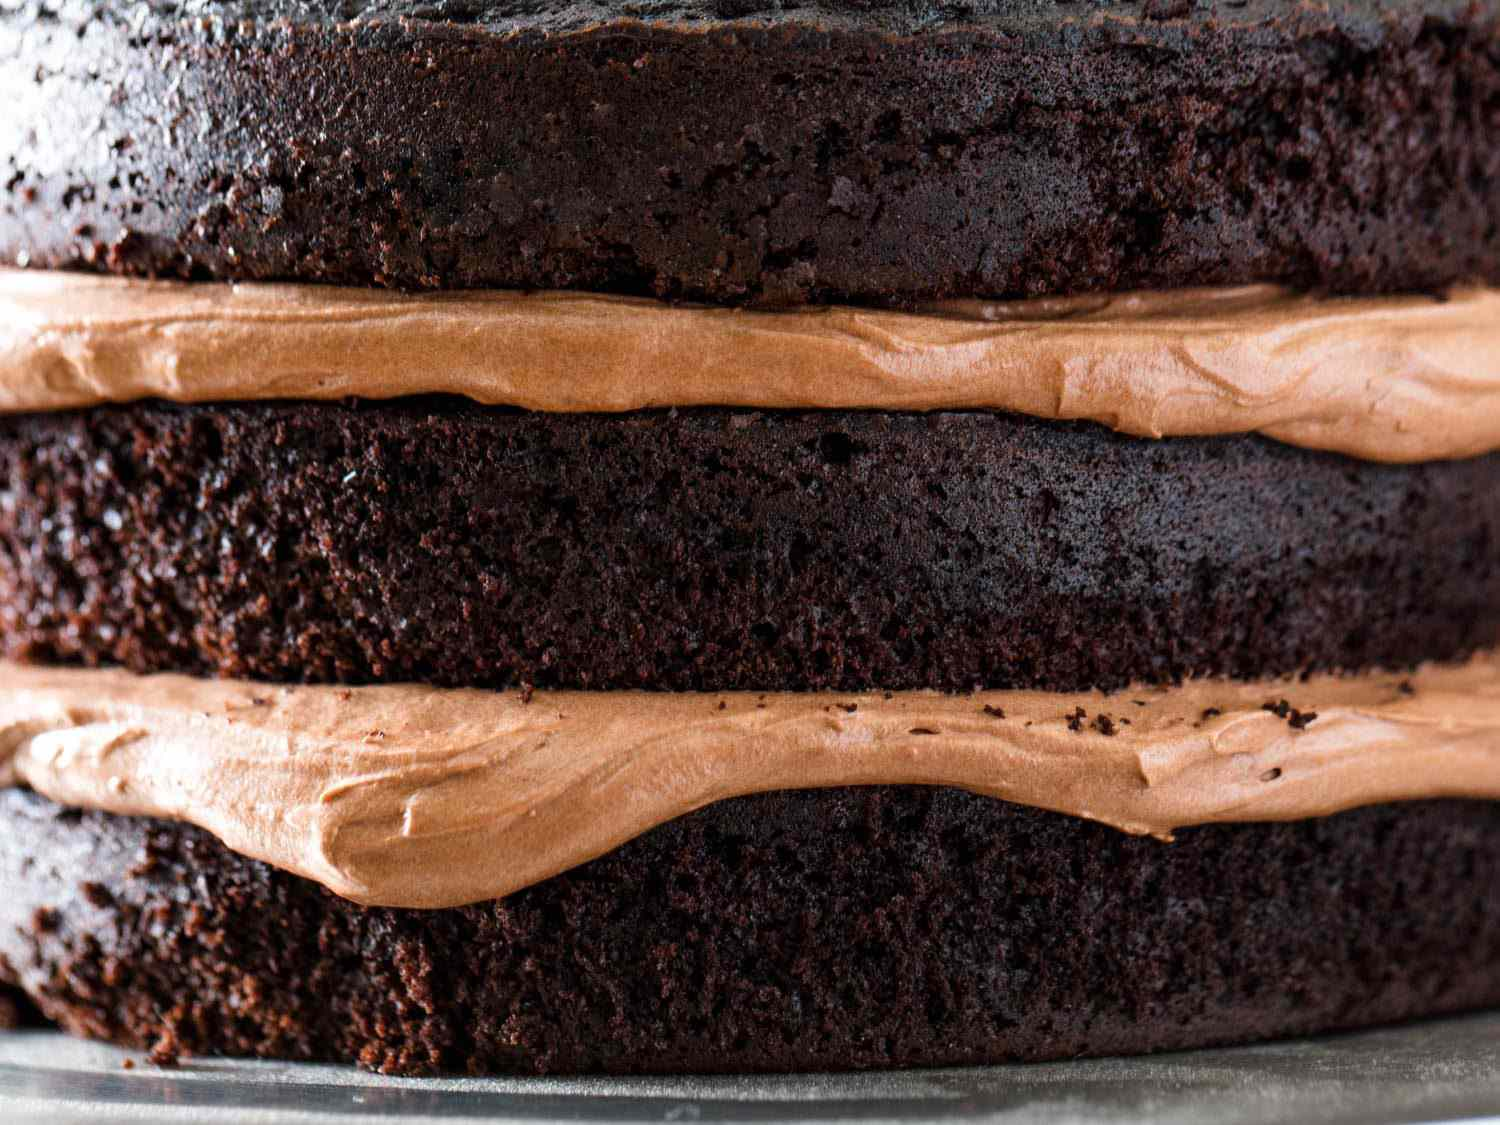 Close up photograph showing layers of Devil's food cake and chocolate Swiss buttercream frosting.